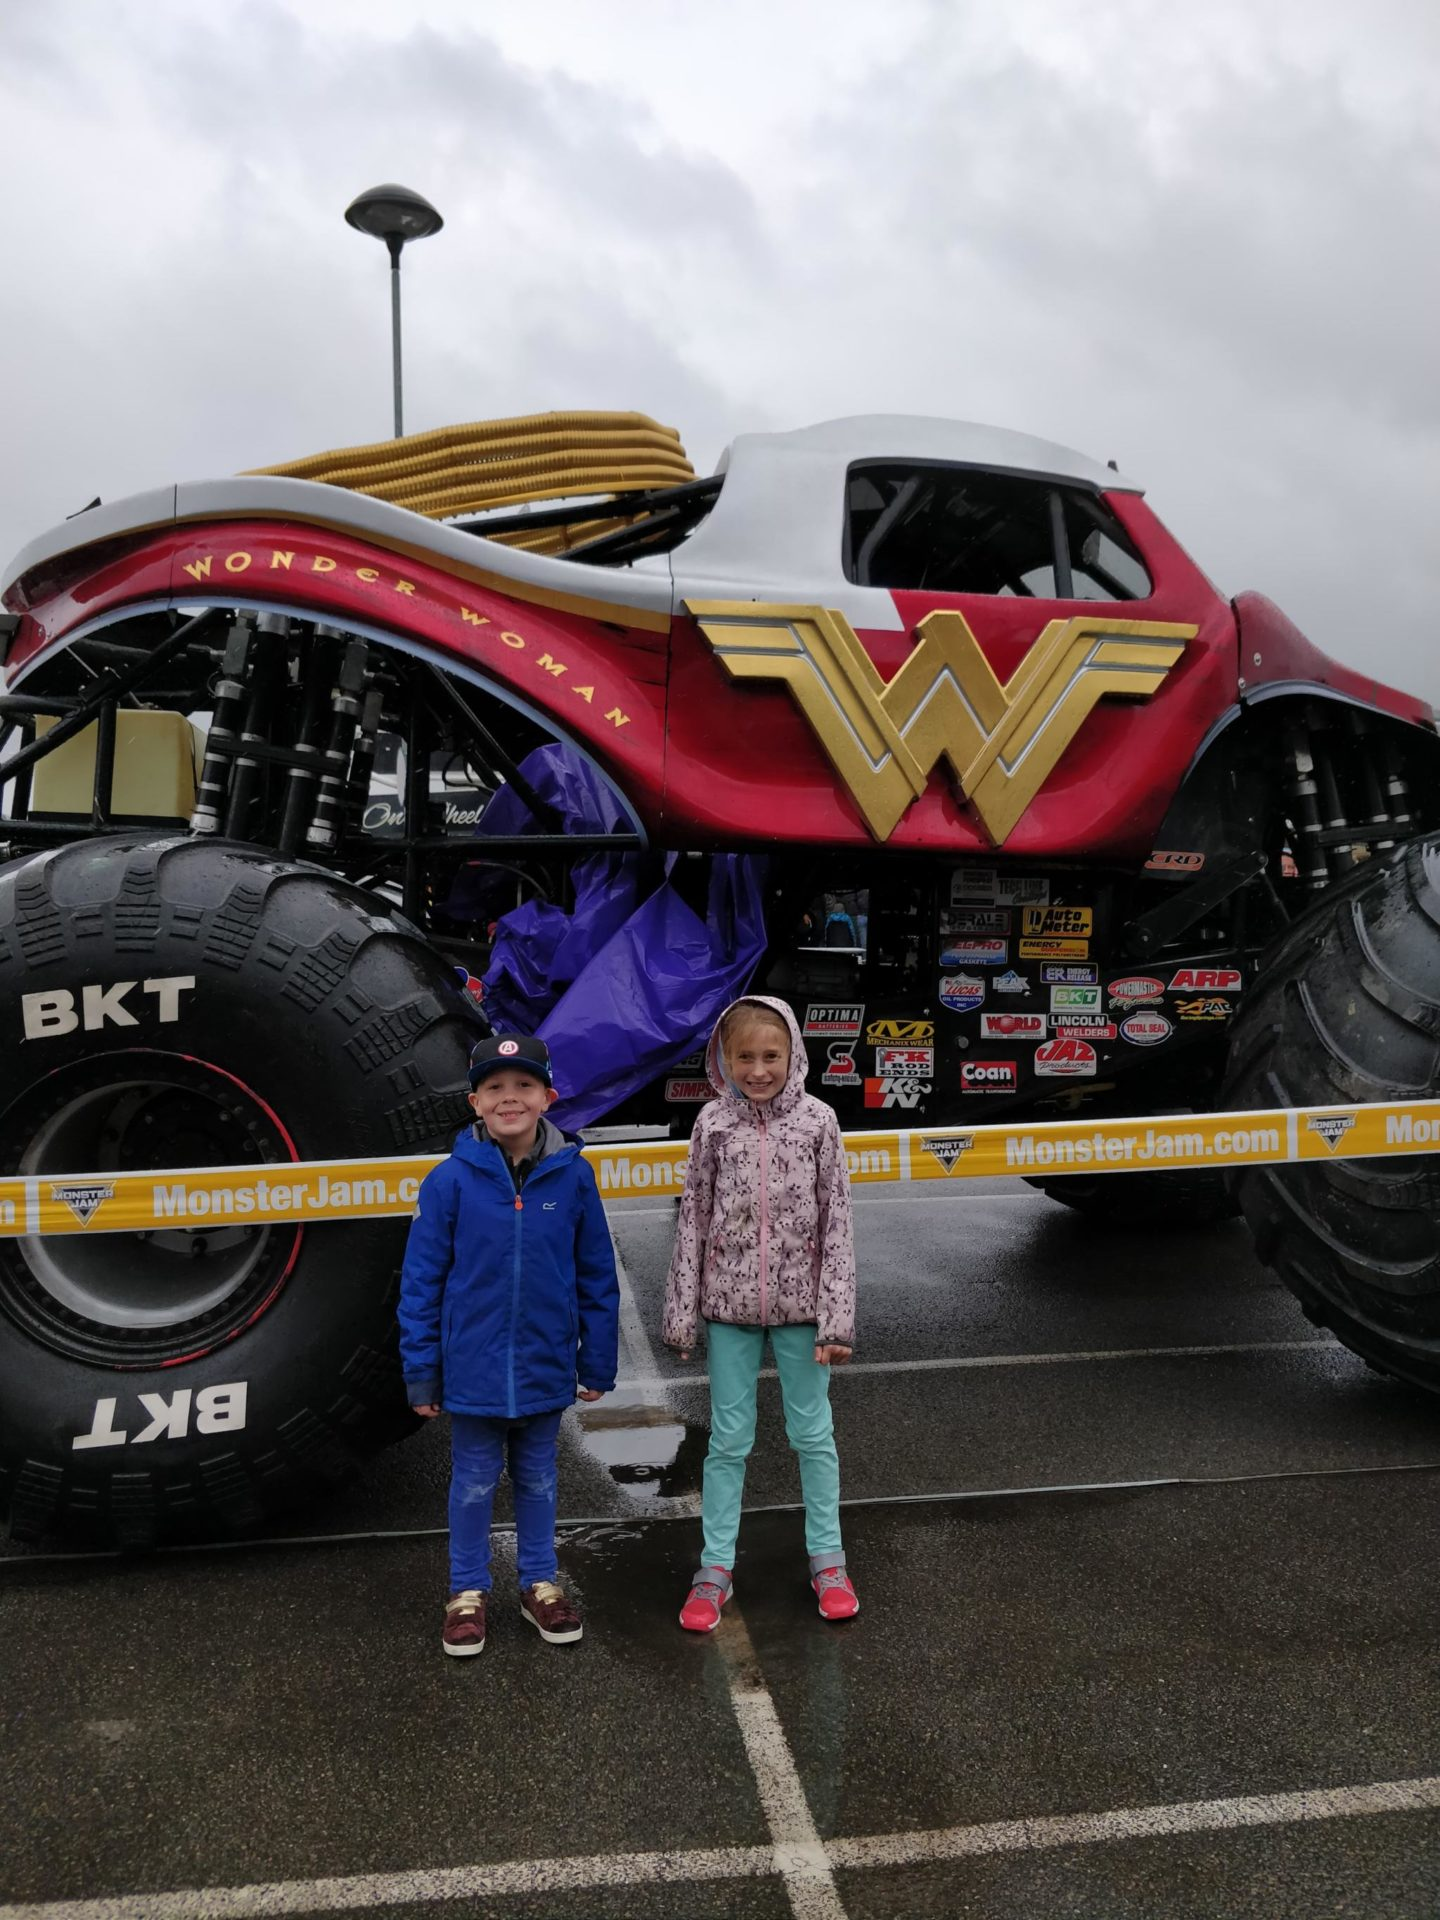 Two children standing in front of a Monster Jam truck.